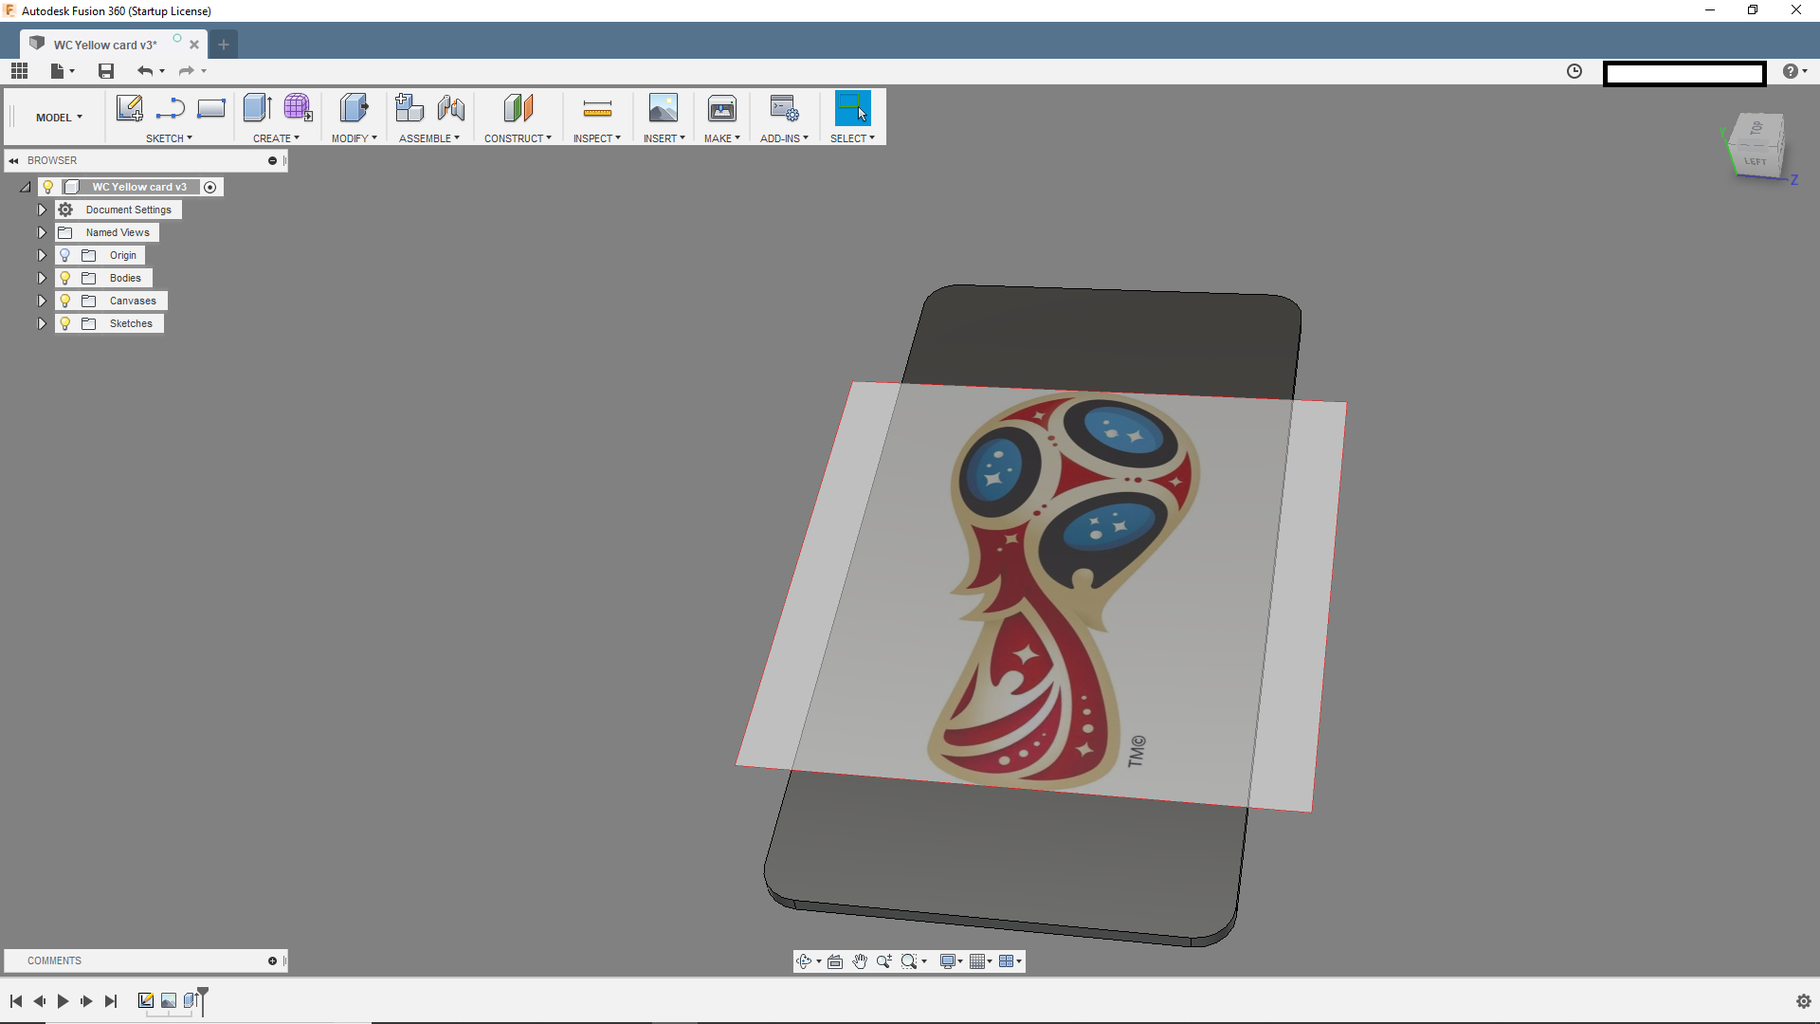 Extrude the Body of the Card